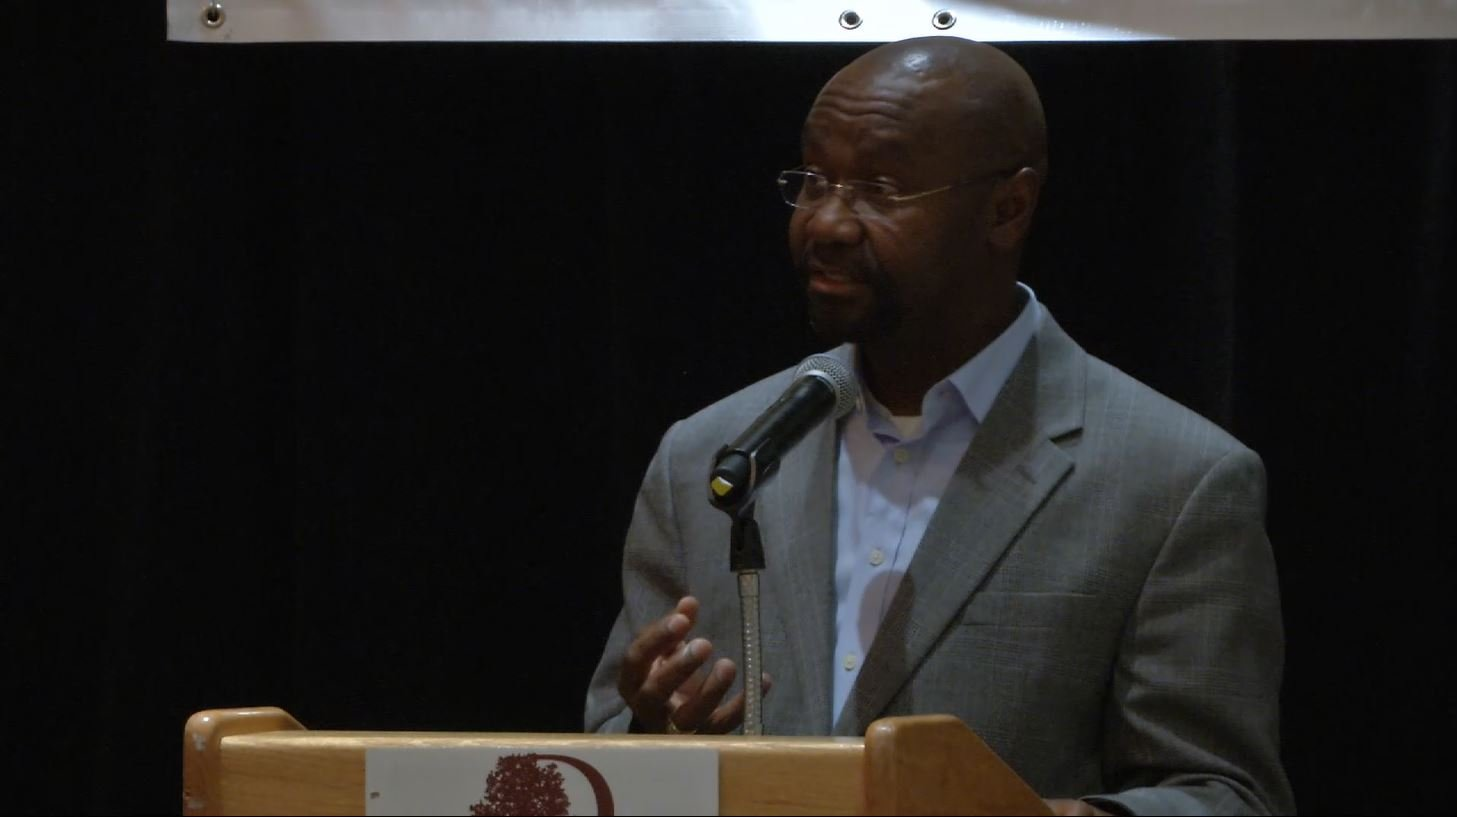 Speakers shared their perspective and stance on resettlement, including Wilmot Collins, who is himself a resettled refugee living in Montana. (MTN News photo)